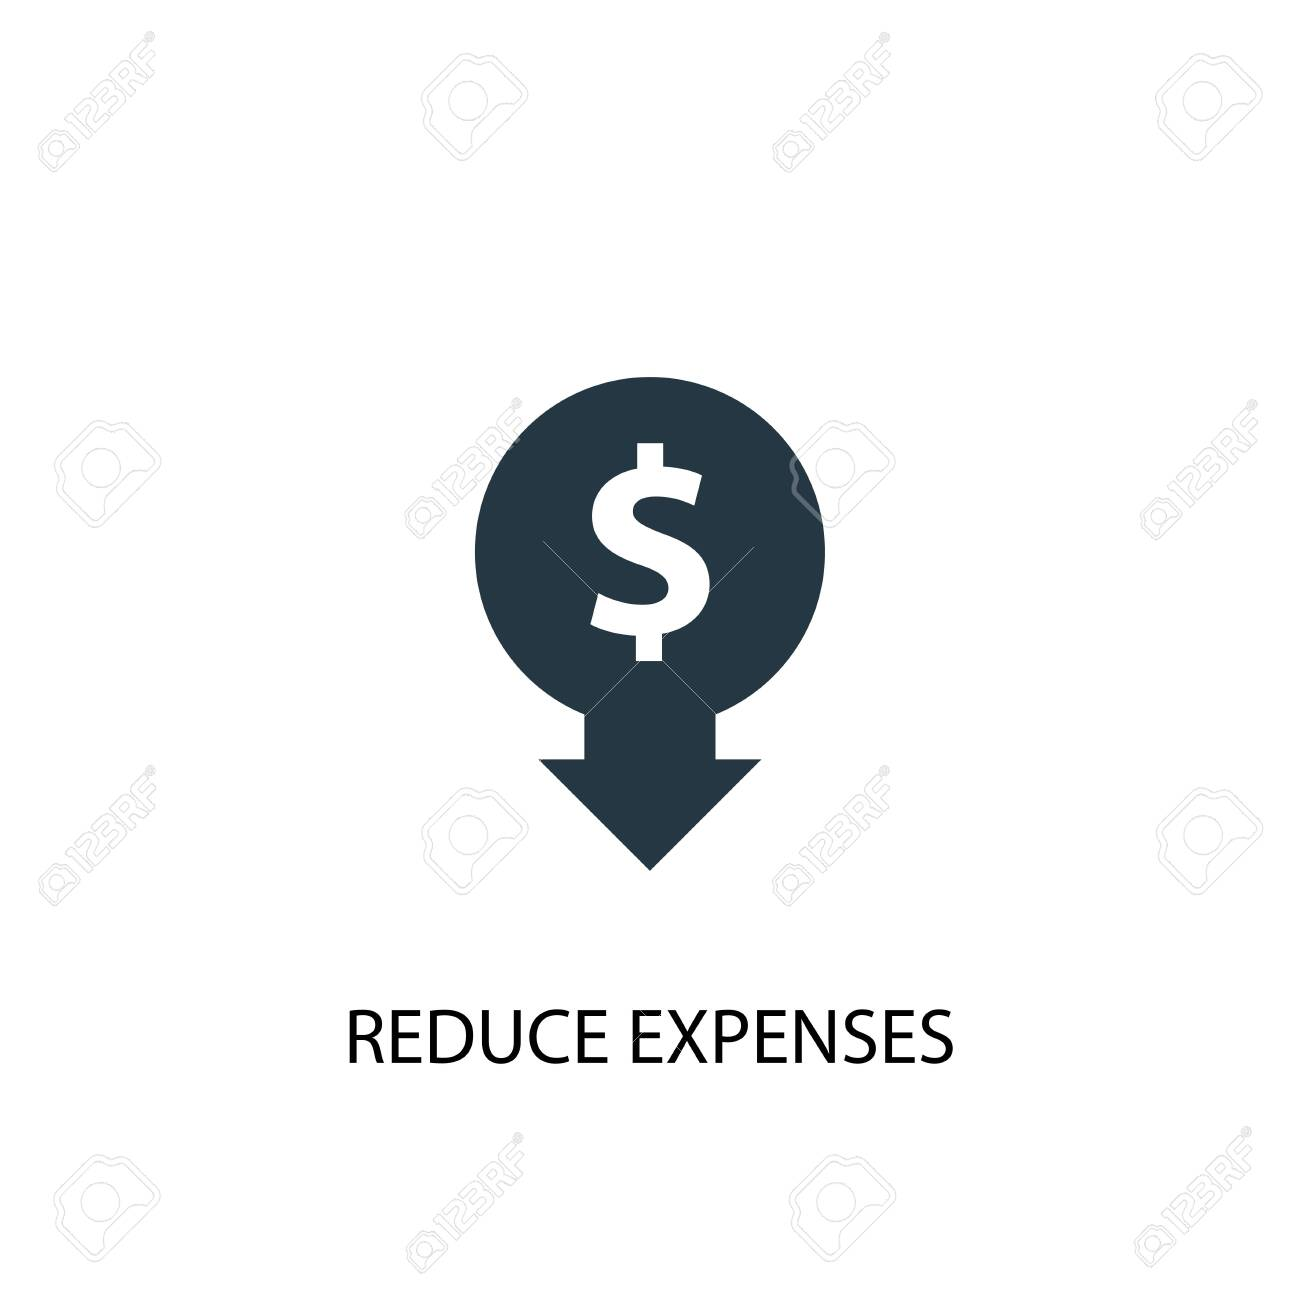 reduce expenses icon. Simple element illustration. reduce expenses concept symbol design. Can be used for web and mobile. - 131973307